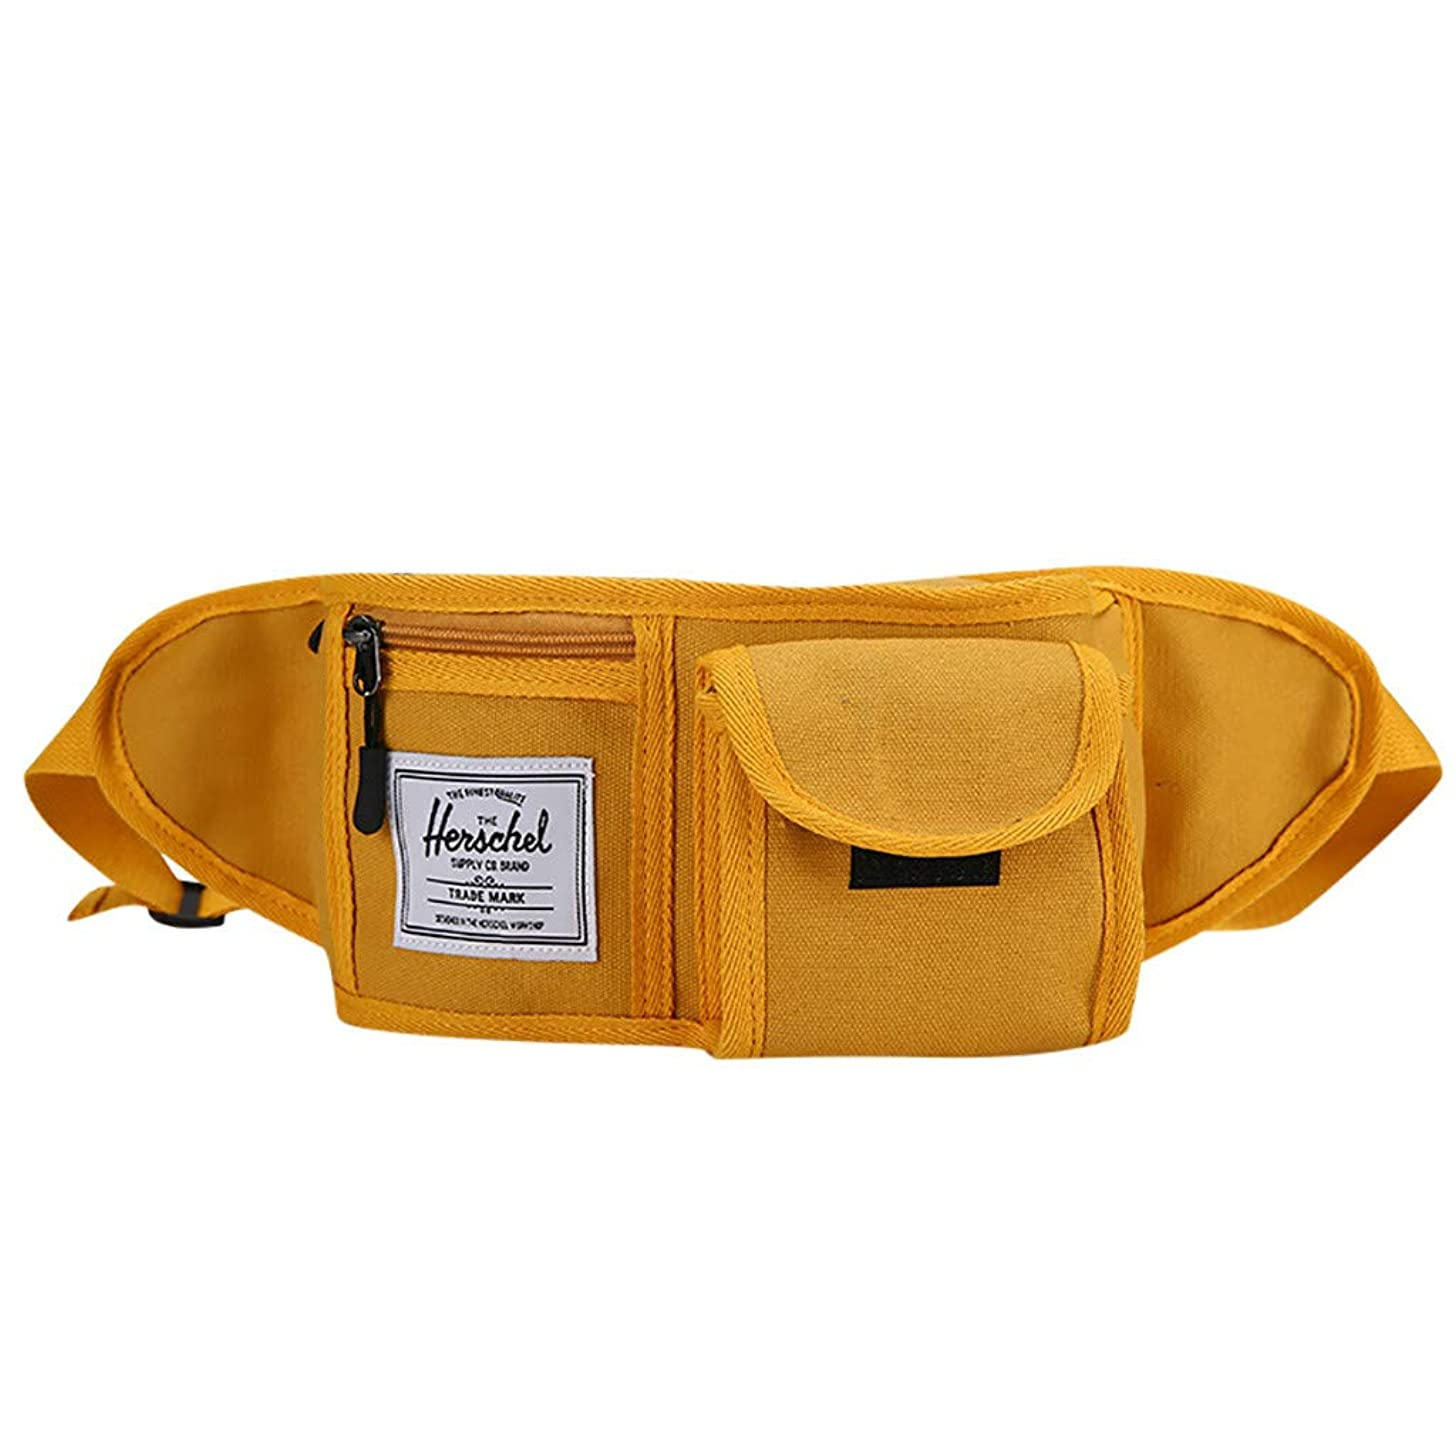 KIM88 Large Capacity Waist Bag Fanny Pack for Men Women Hip Bum Bag for Outdoors Workout Traveling Running Hiking Cycling